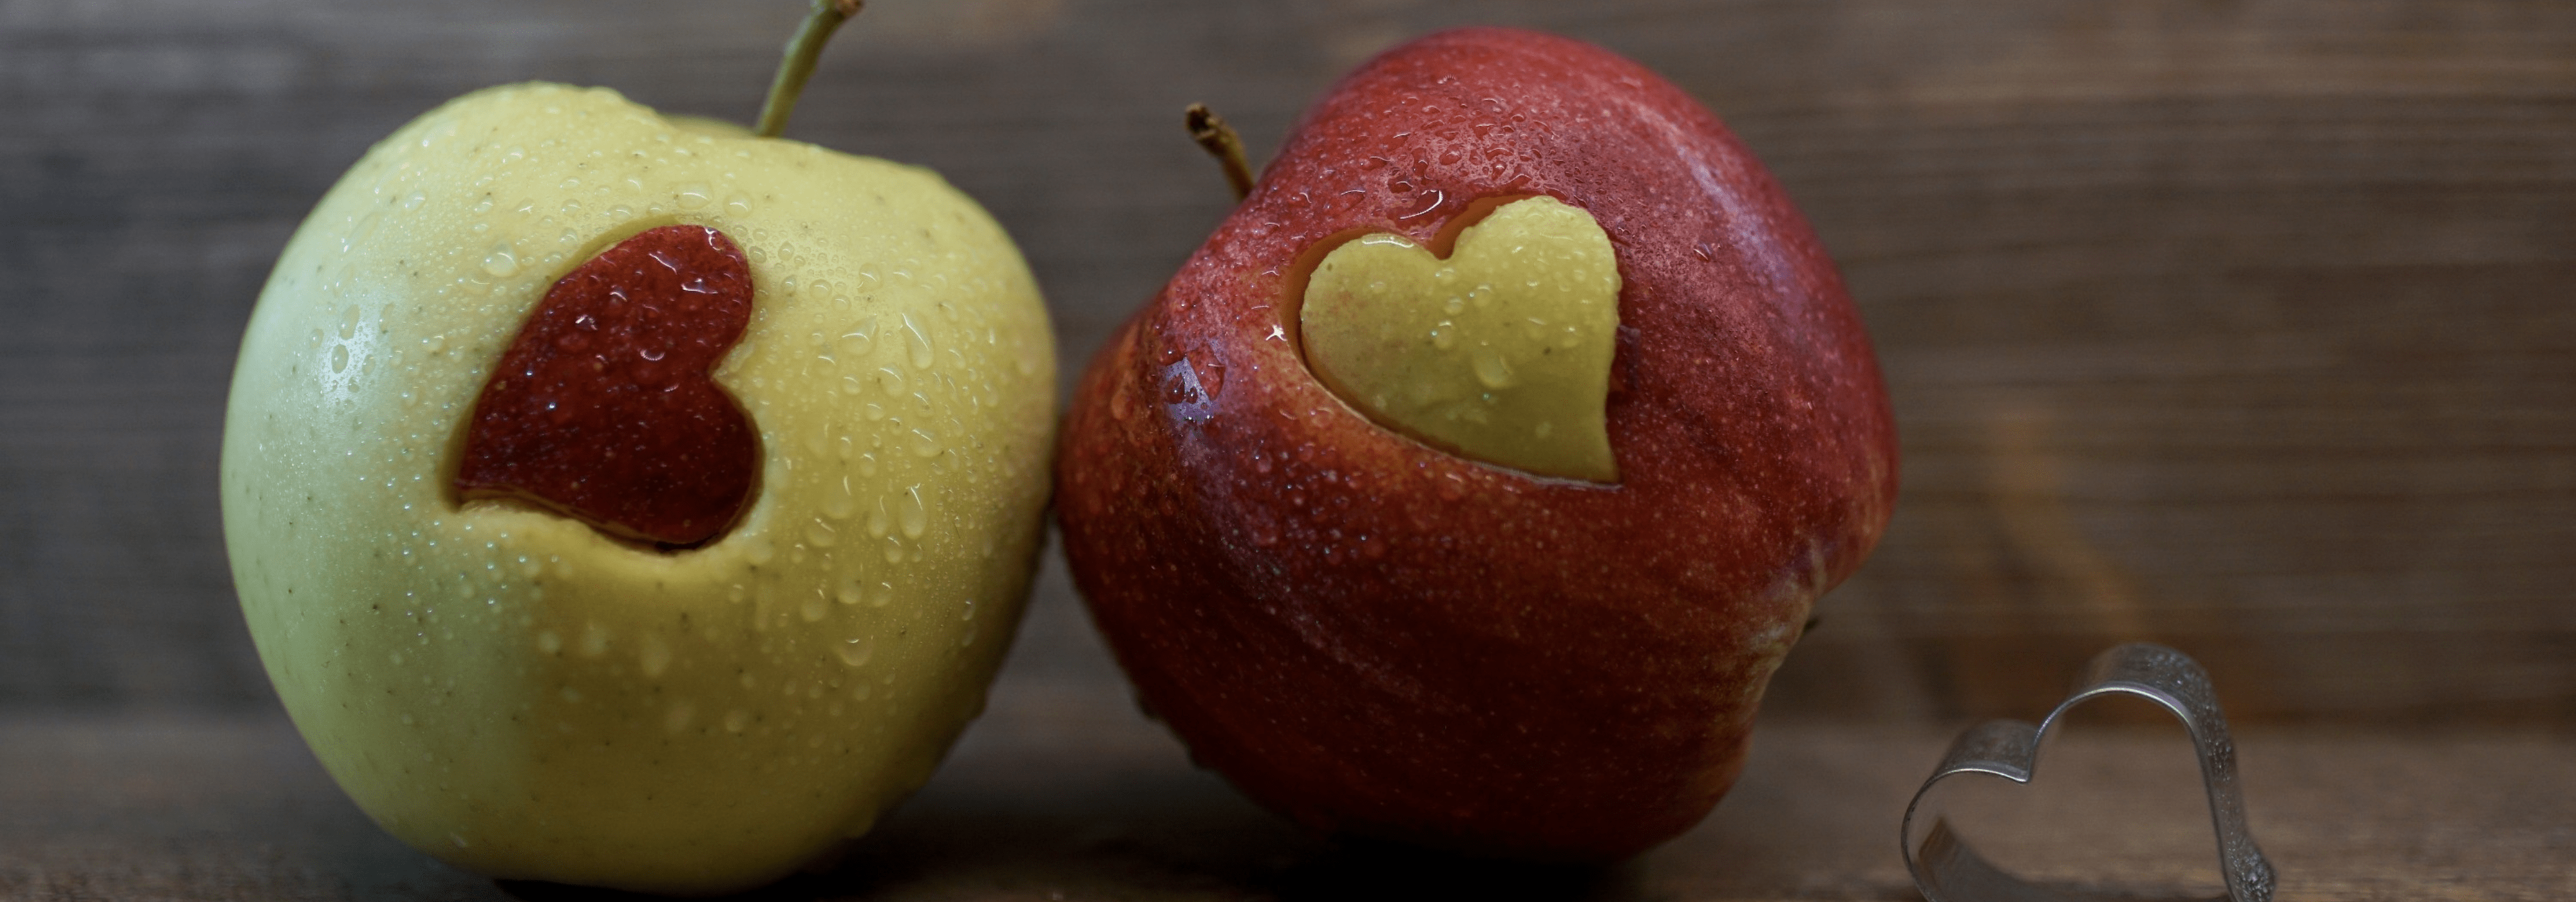 Apple,                Fruit,                Still,                Life,                Photography,                Love,                Produce,                Carving,                Black,                 Free Image